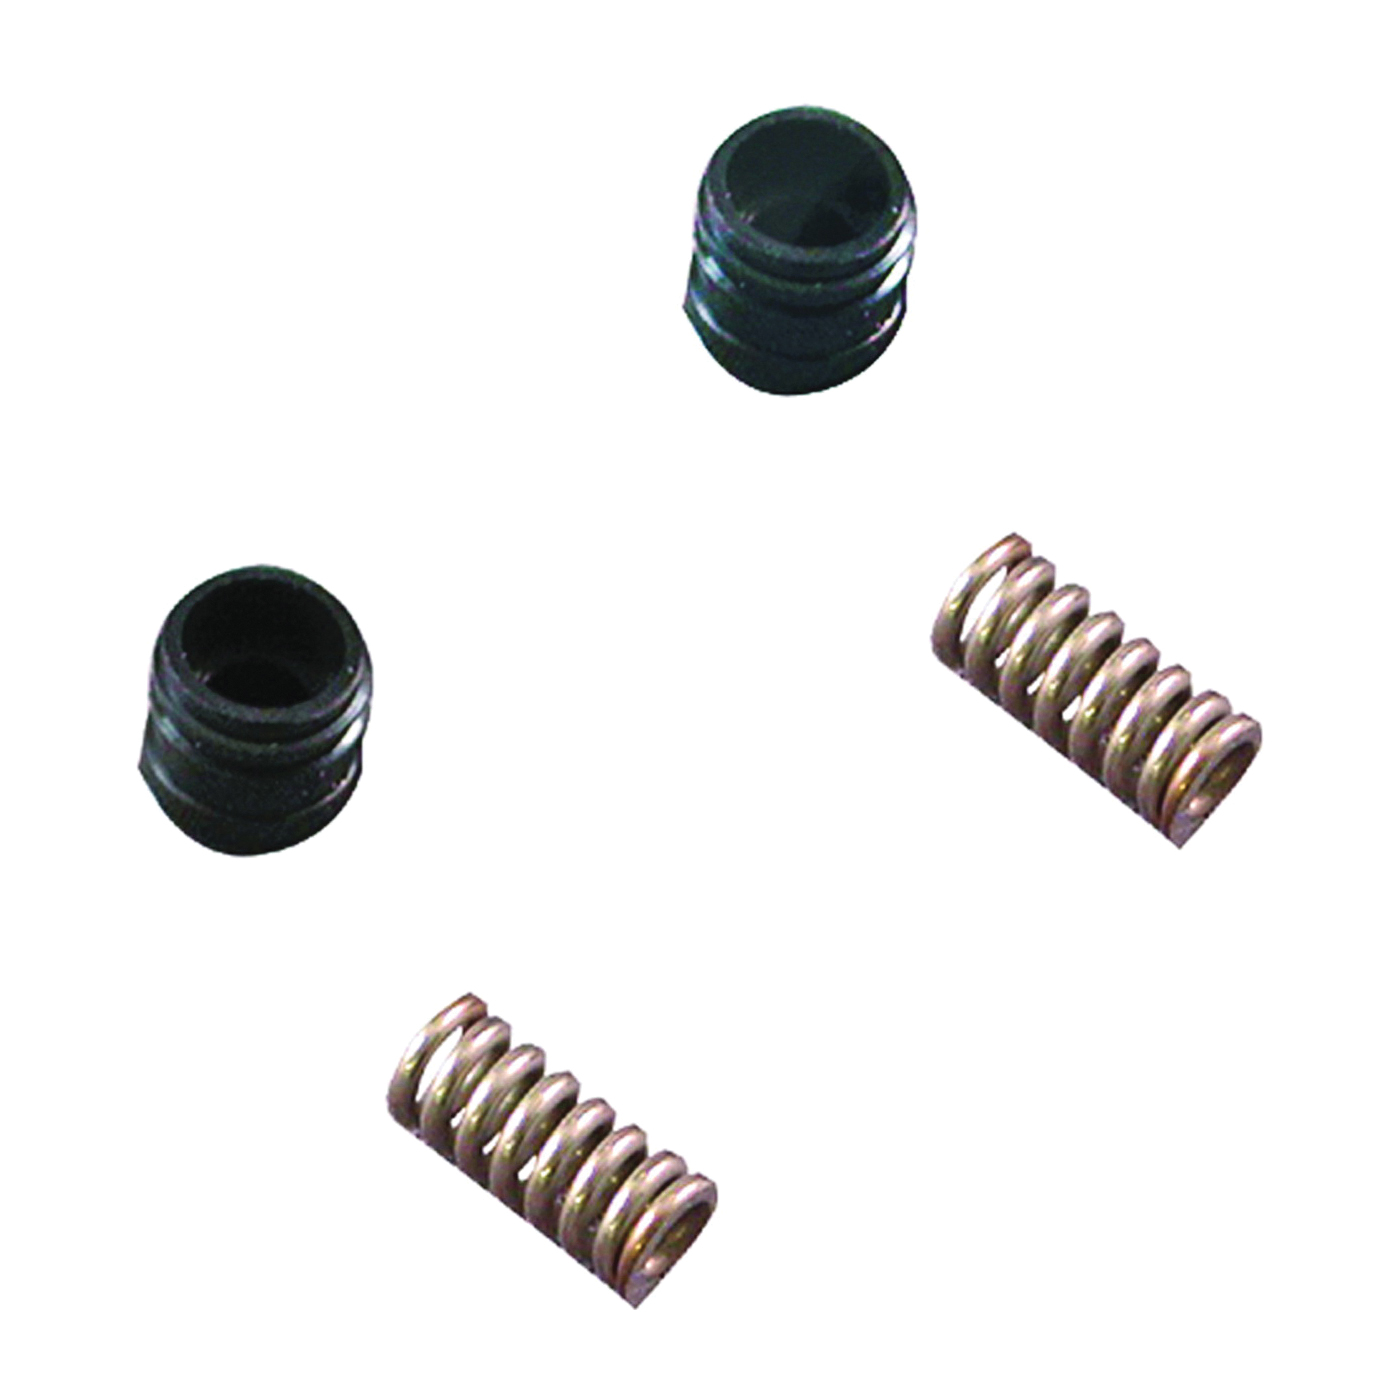 Picture of Danco 88005 Seat and Spring Set, Black